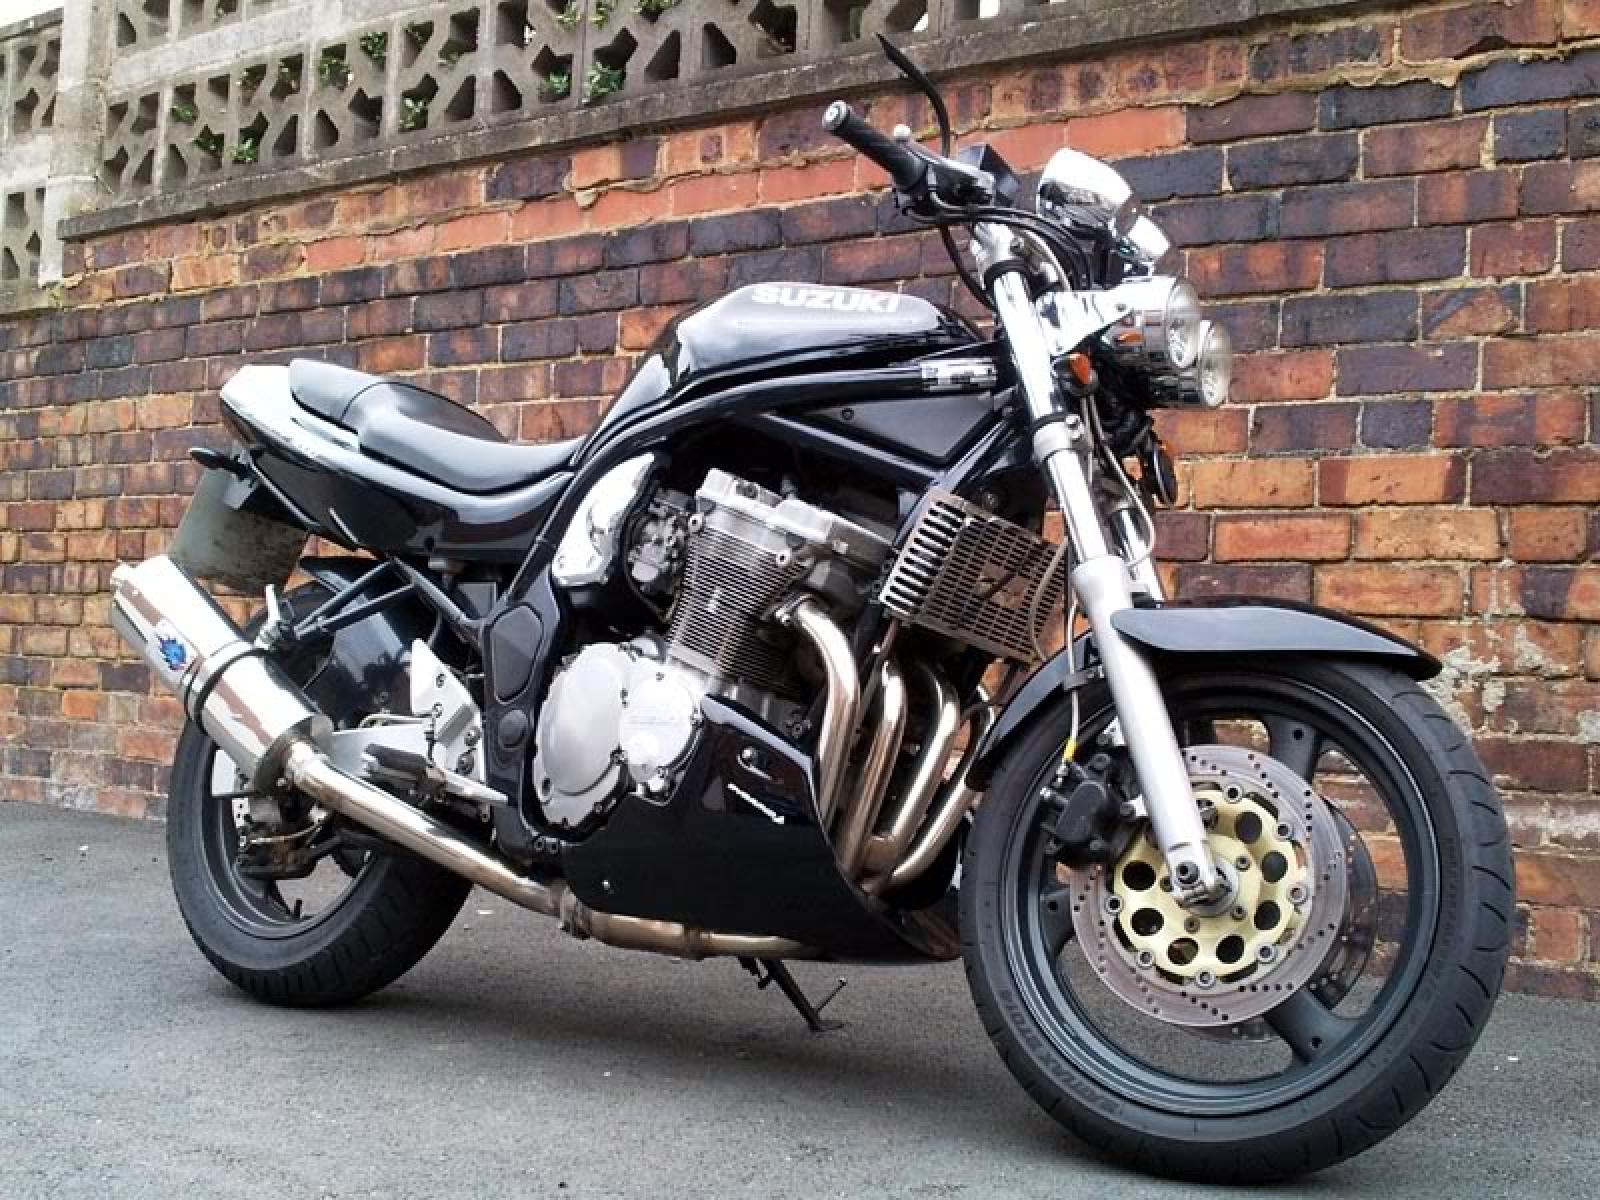 2014 Ducati Streetfighter 848 Parts and Accessories